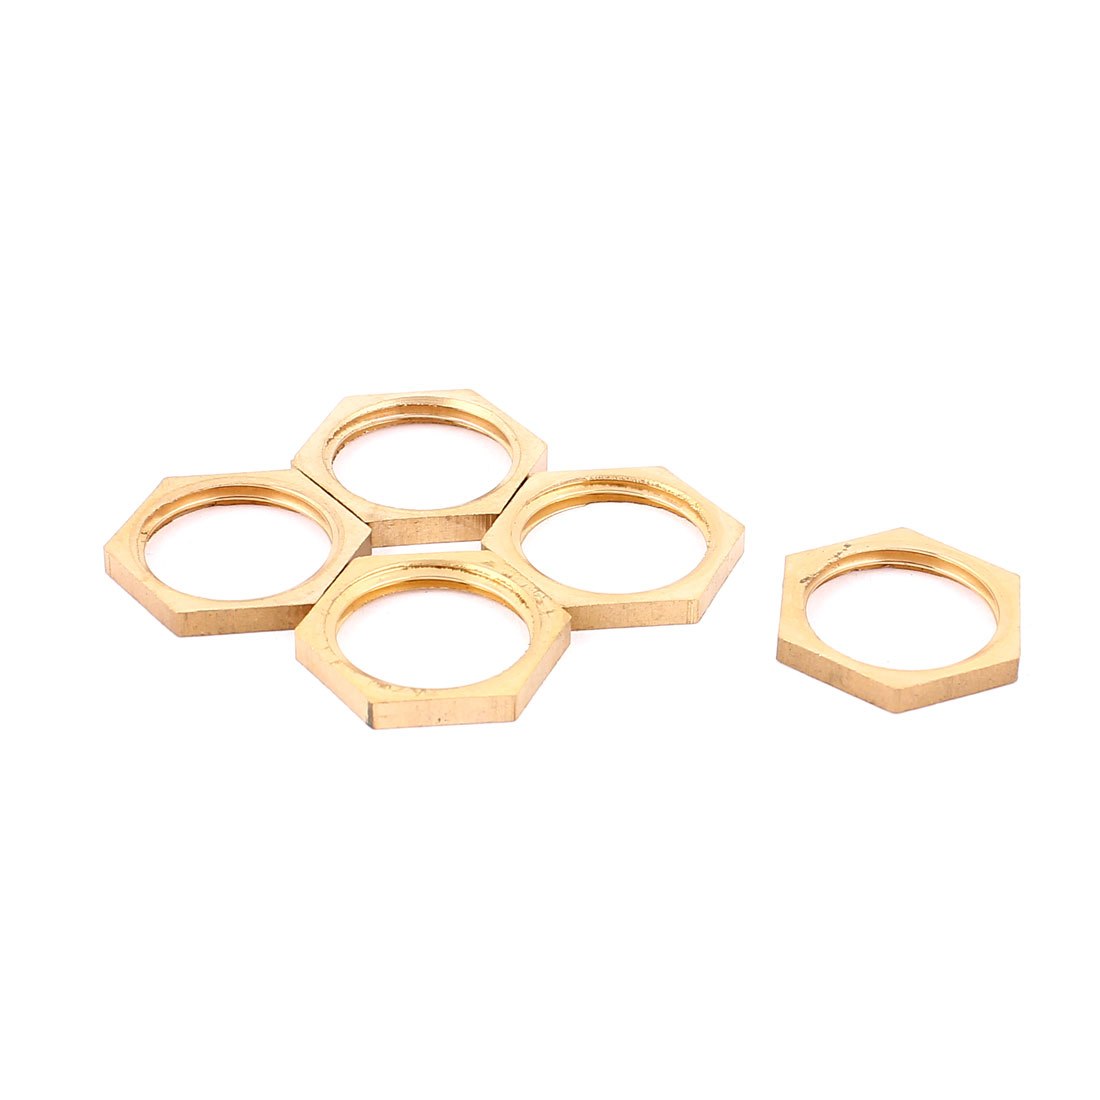 1/2BSP Female Thread Brass Pipe Fitting Hex Lock Nut 5pcs